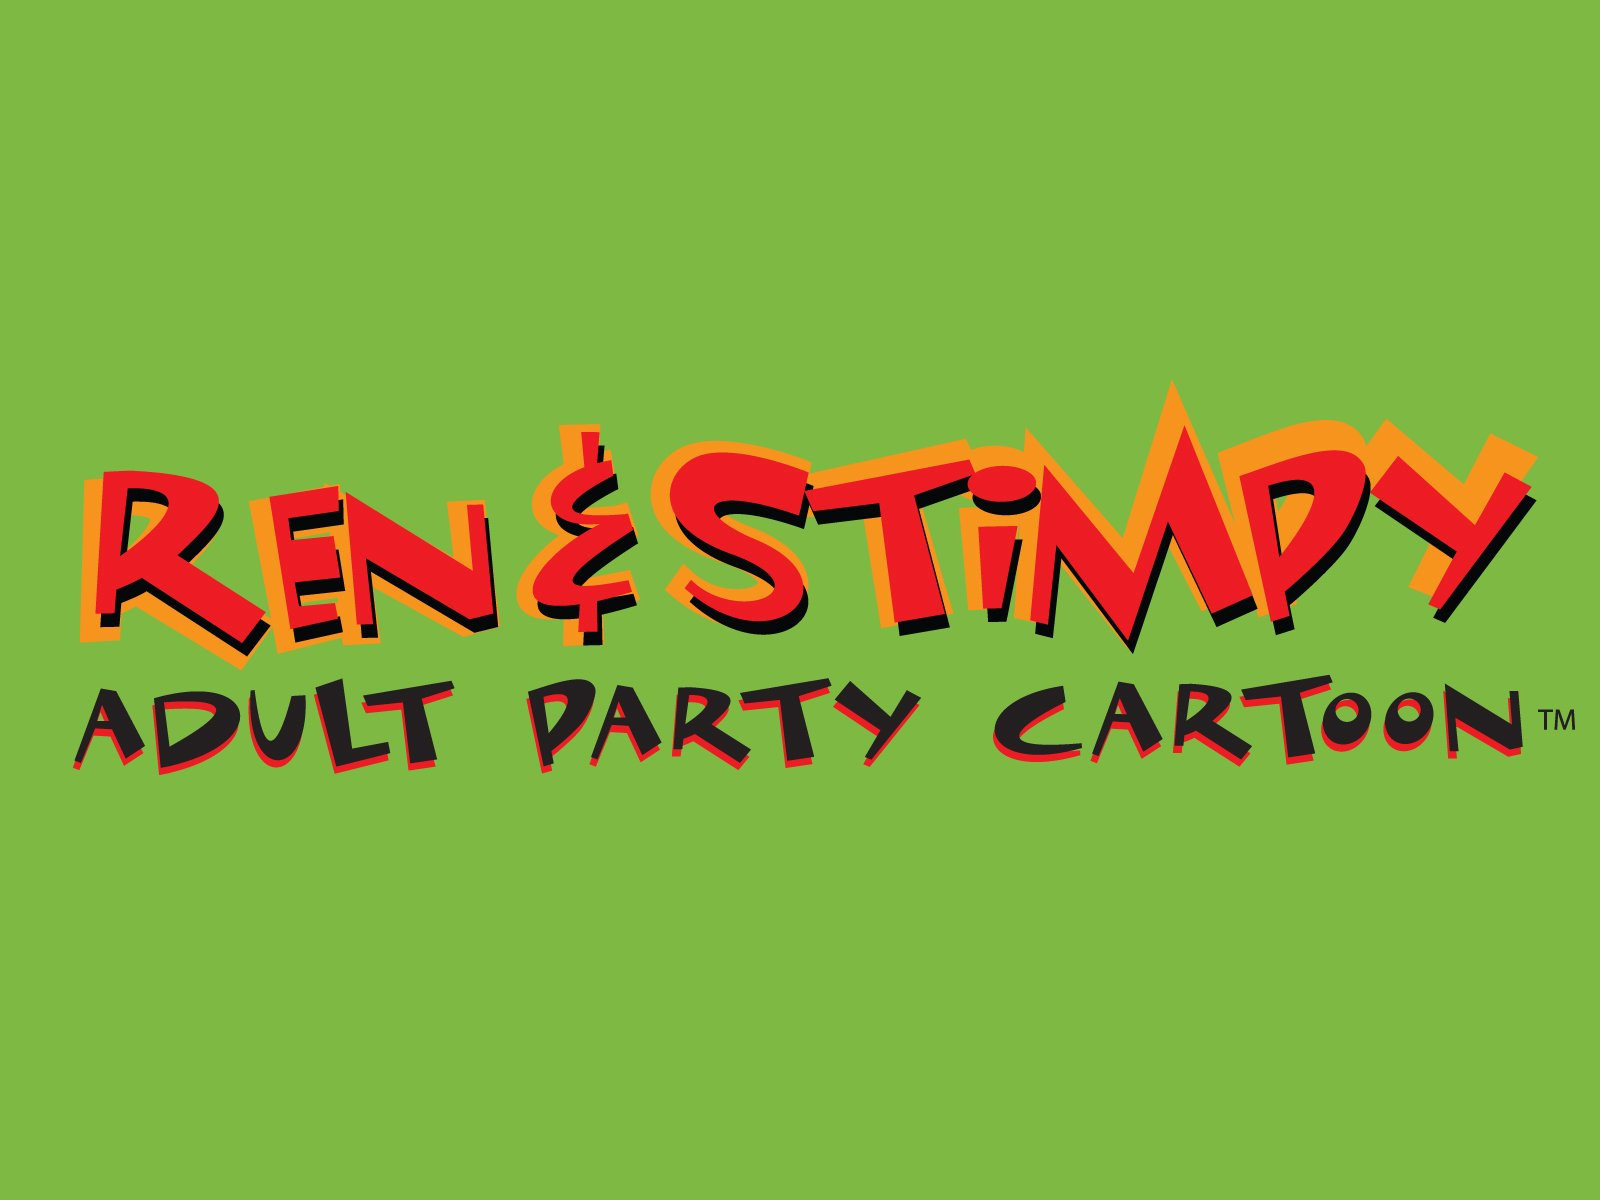 Adult party cartoon